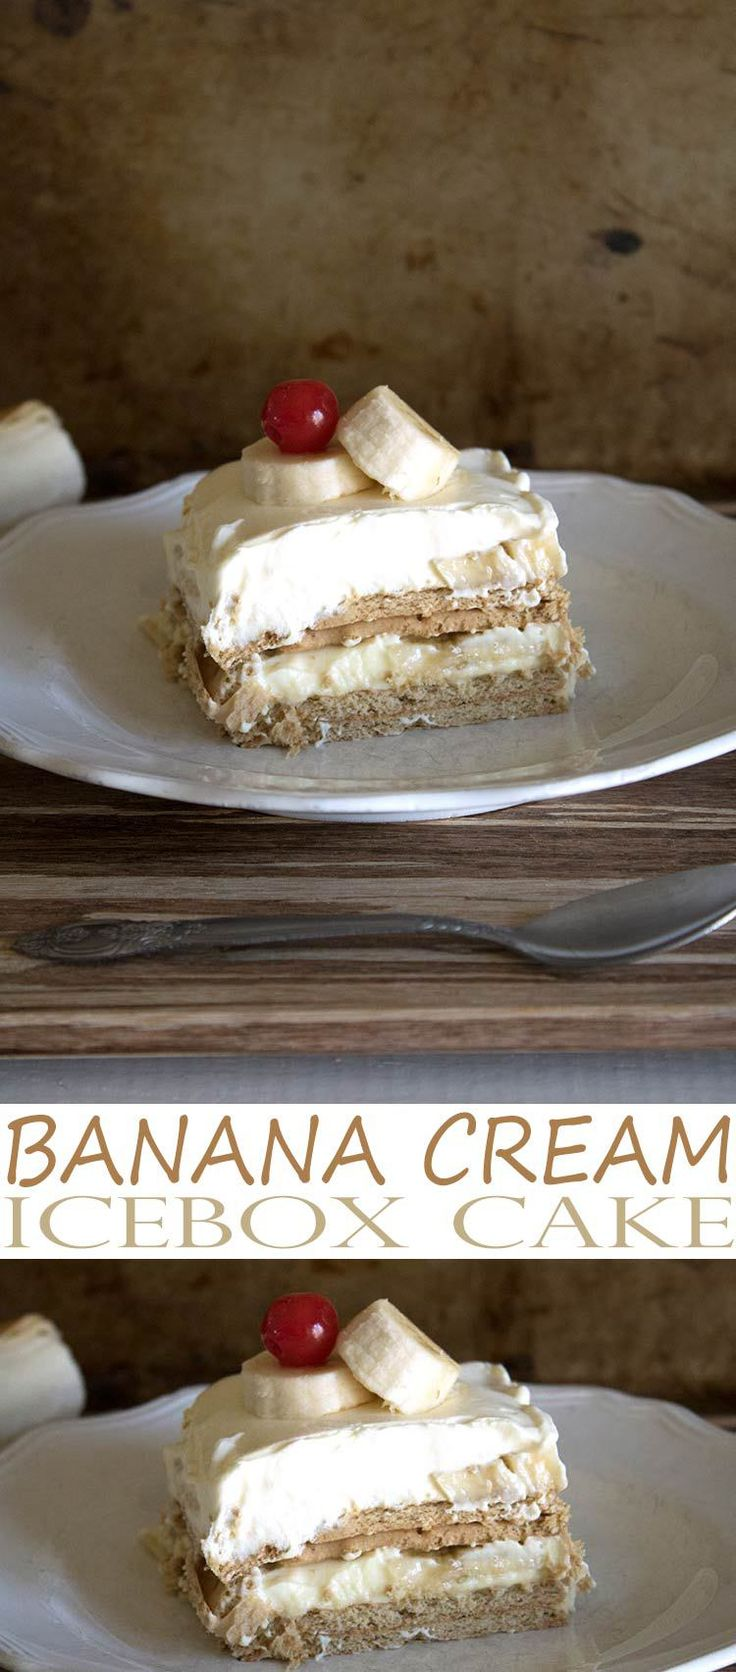 Banana Cream Dessert is a simple icebox cake recipe that is easy to throw together with ingredients you likely already have in your pantry. You'll love this banana no-bake dessert recipe.